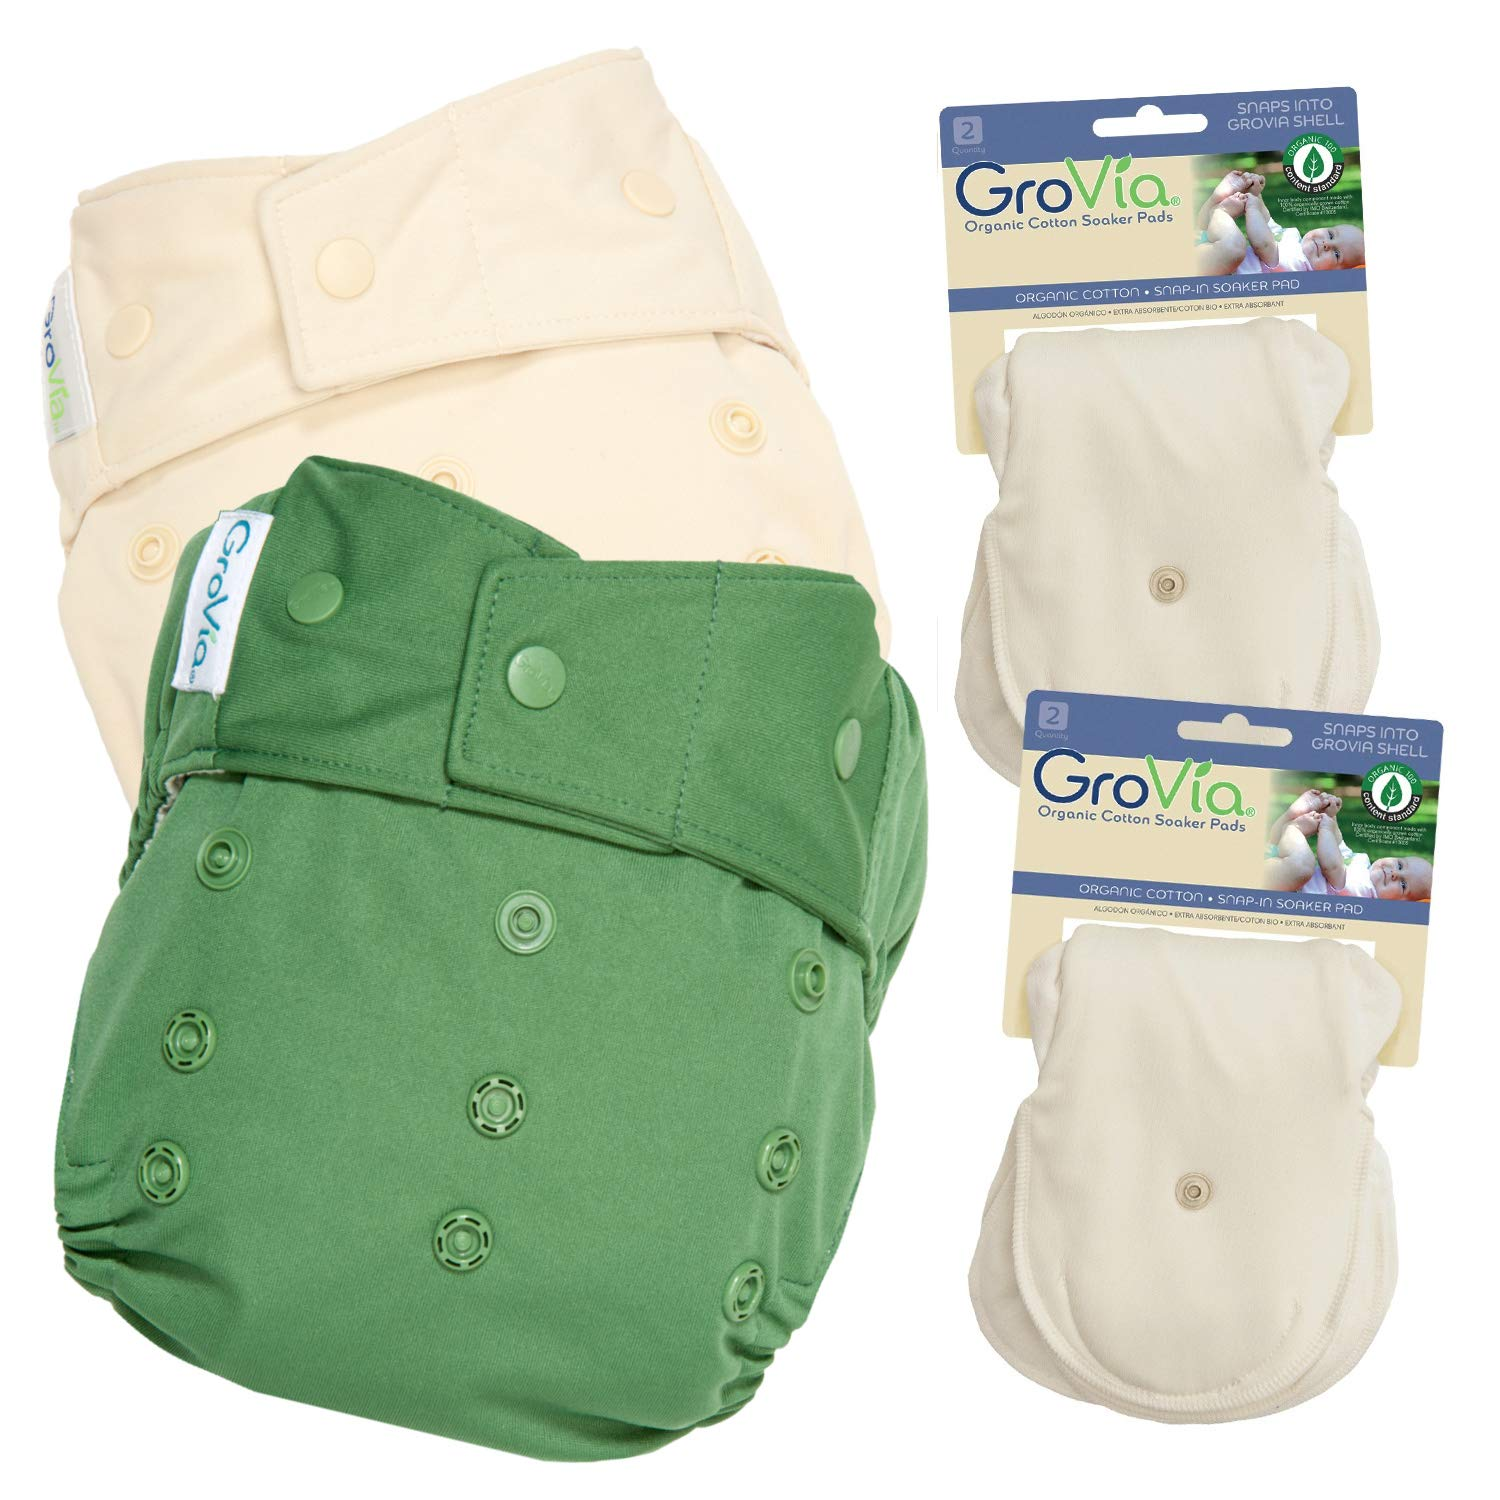 GroVia Experience Package: 2 Shells + 4 Organic Cotton Soaker Pads (Color Mix 2 Snap)